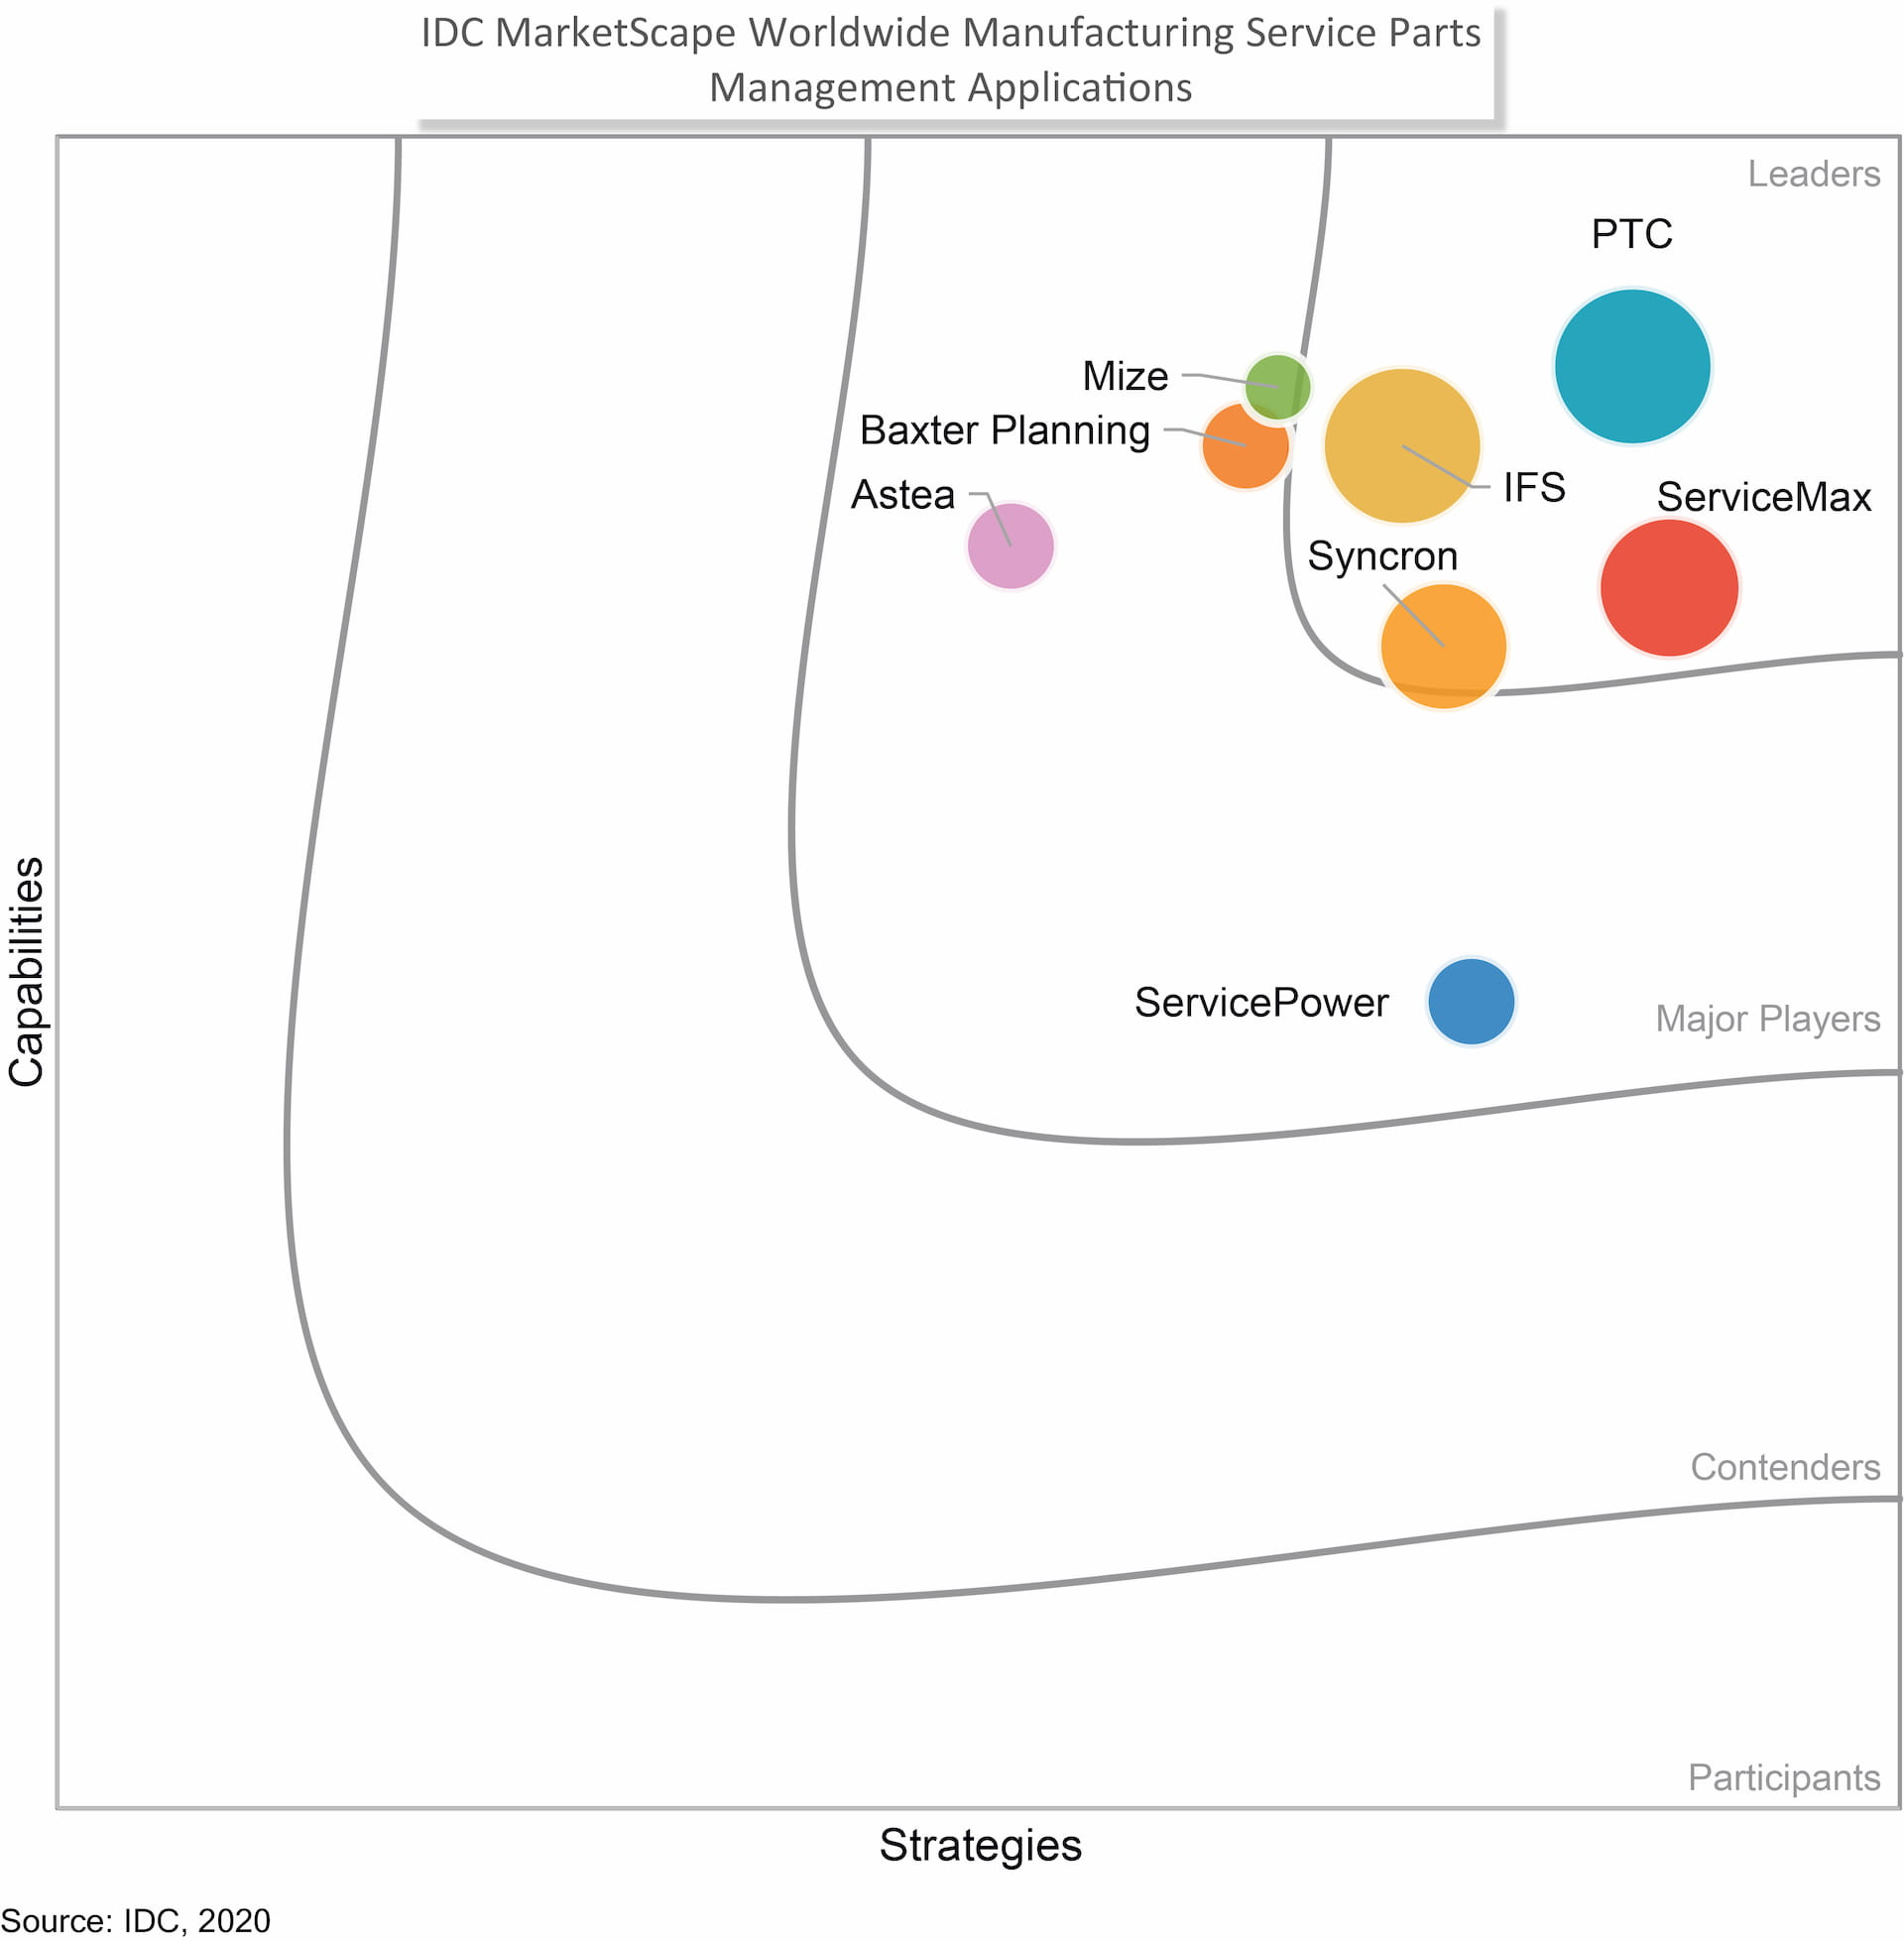 idc-marketscape-service-parts-management-ptc-servigistics-leader-480x320